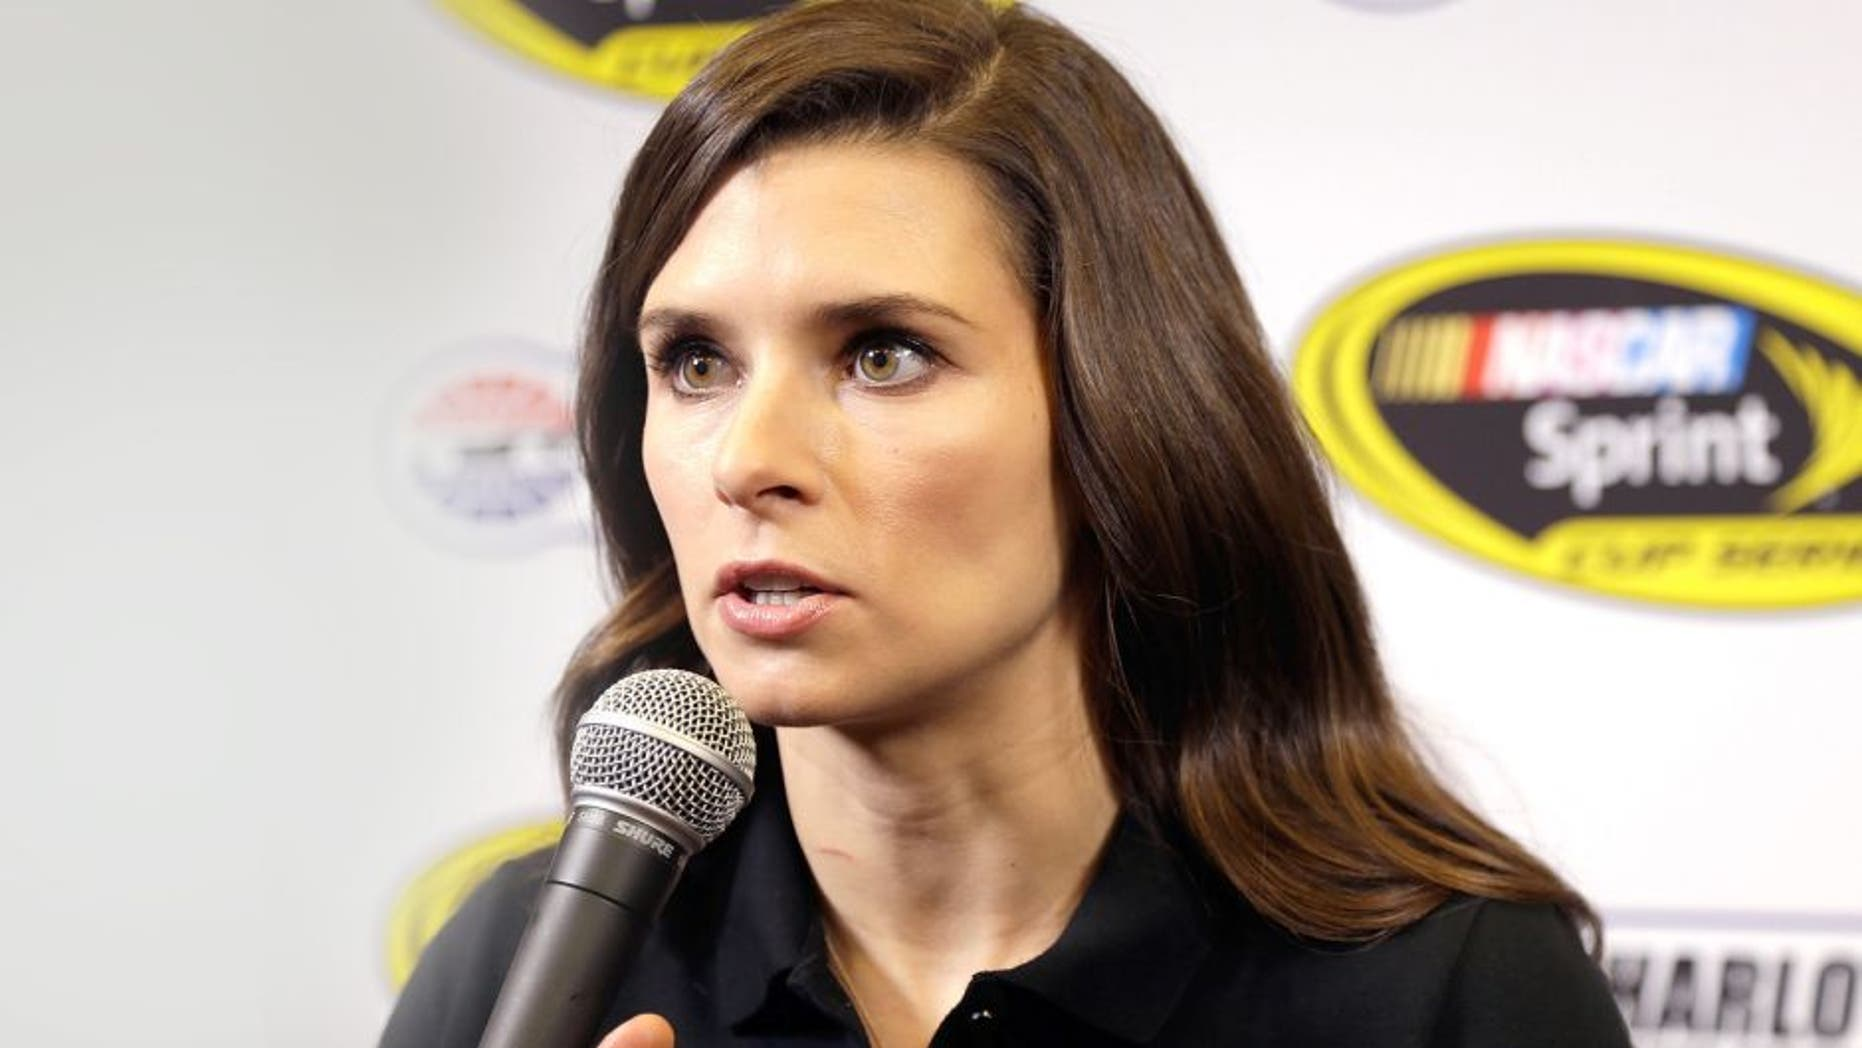 CHARLOTTE, NC - JANUARY 27: Danica Patrick talks with reporters during the NASCAR Sprint Media Tour at the Charlotte Convention Center on January 27, 2015 in Charlotte, North Carolina. (Photo by Bob Leverone/NASCAR via Getty Images)